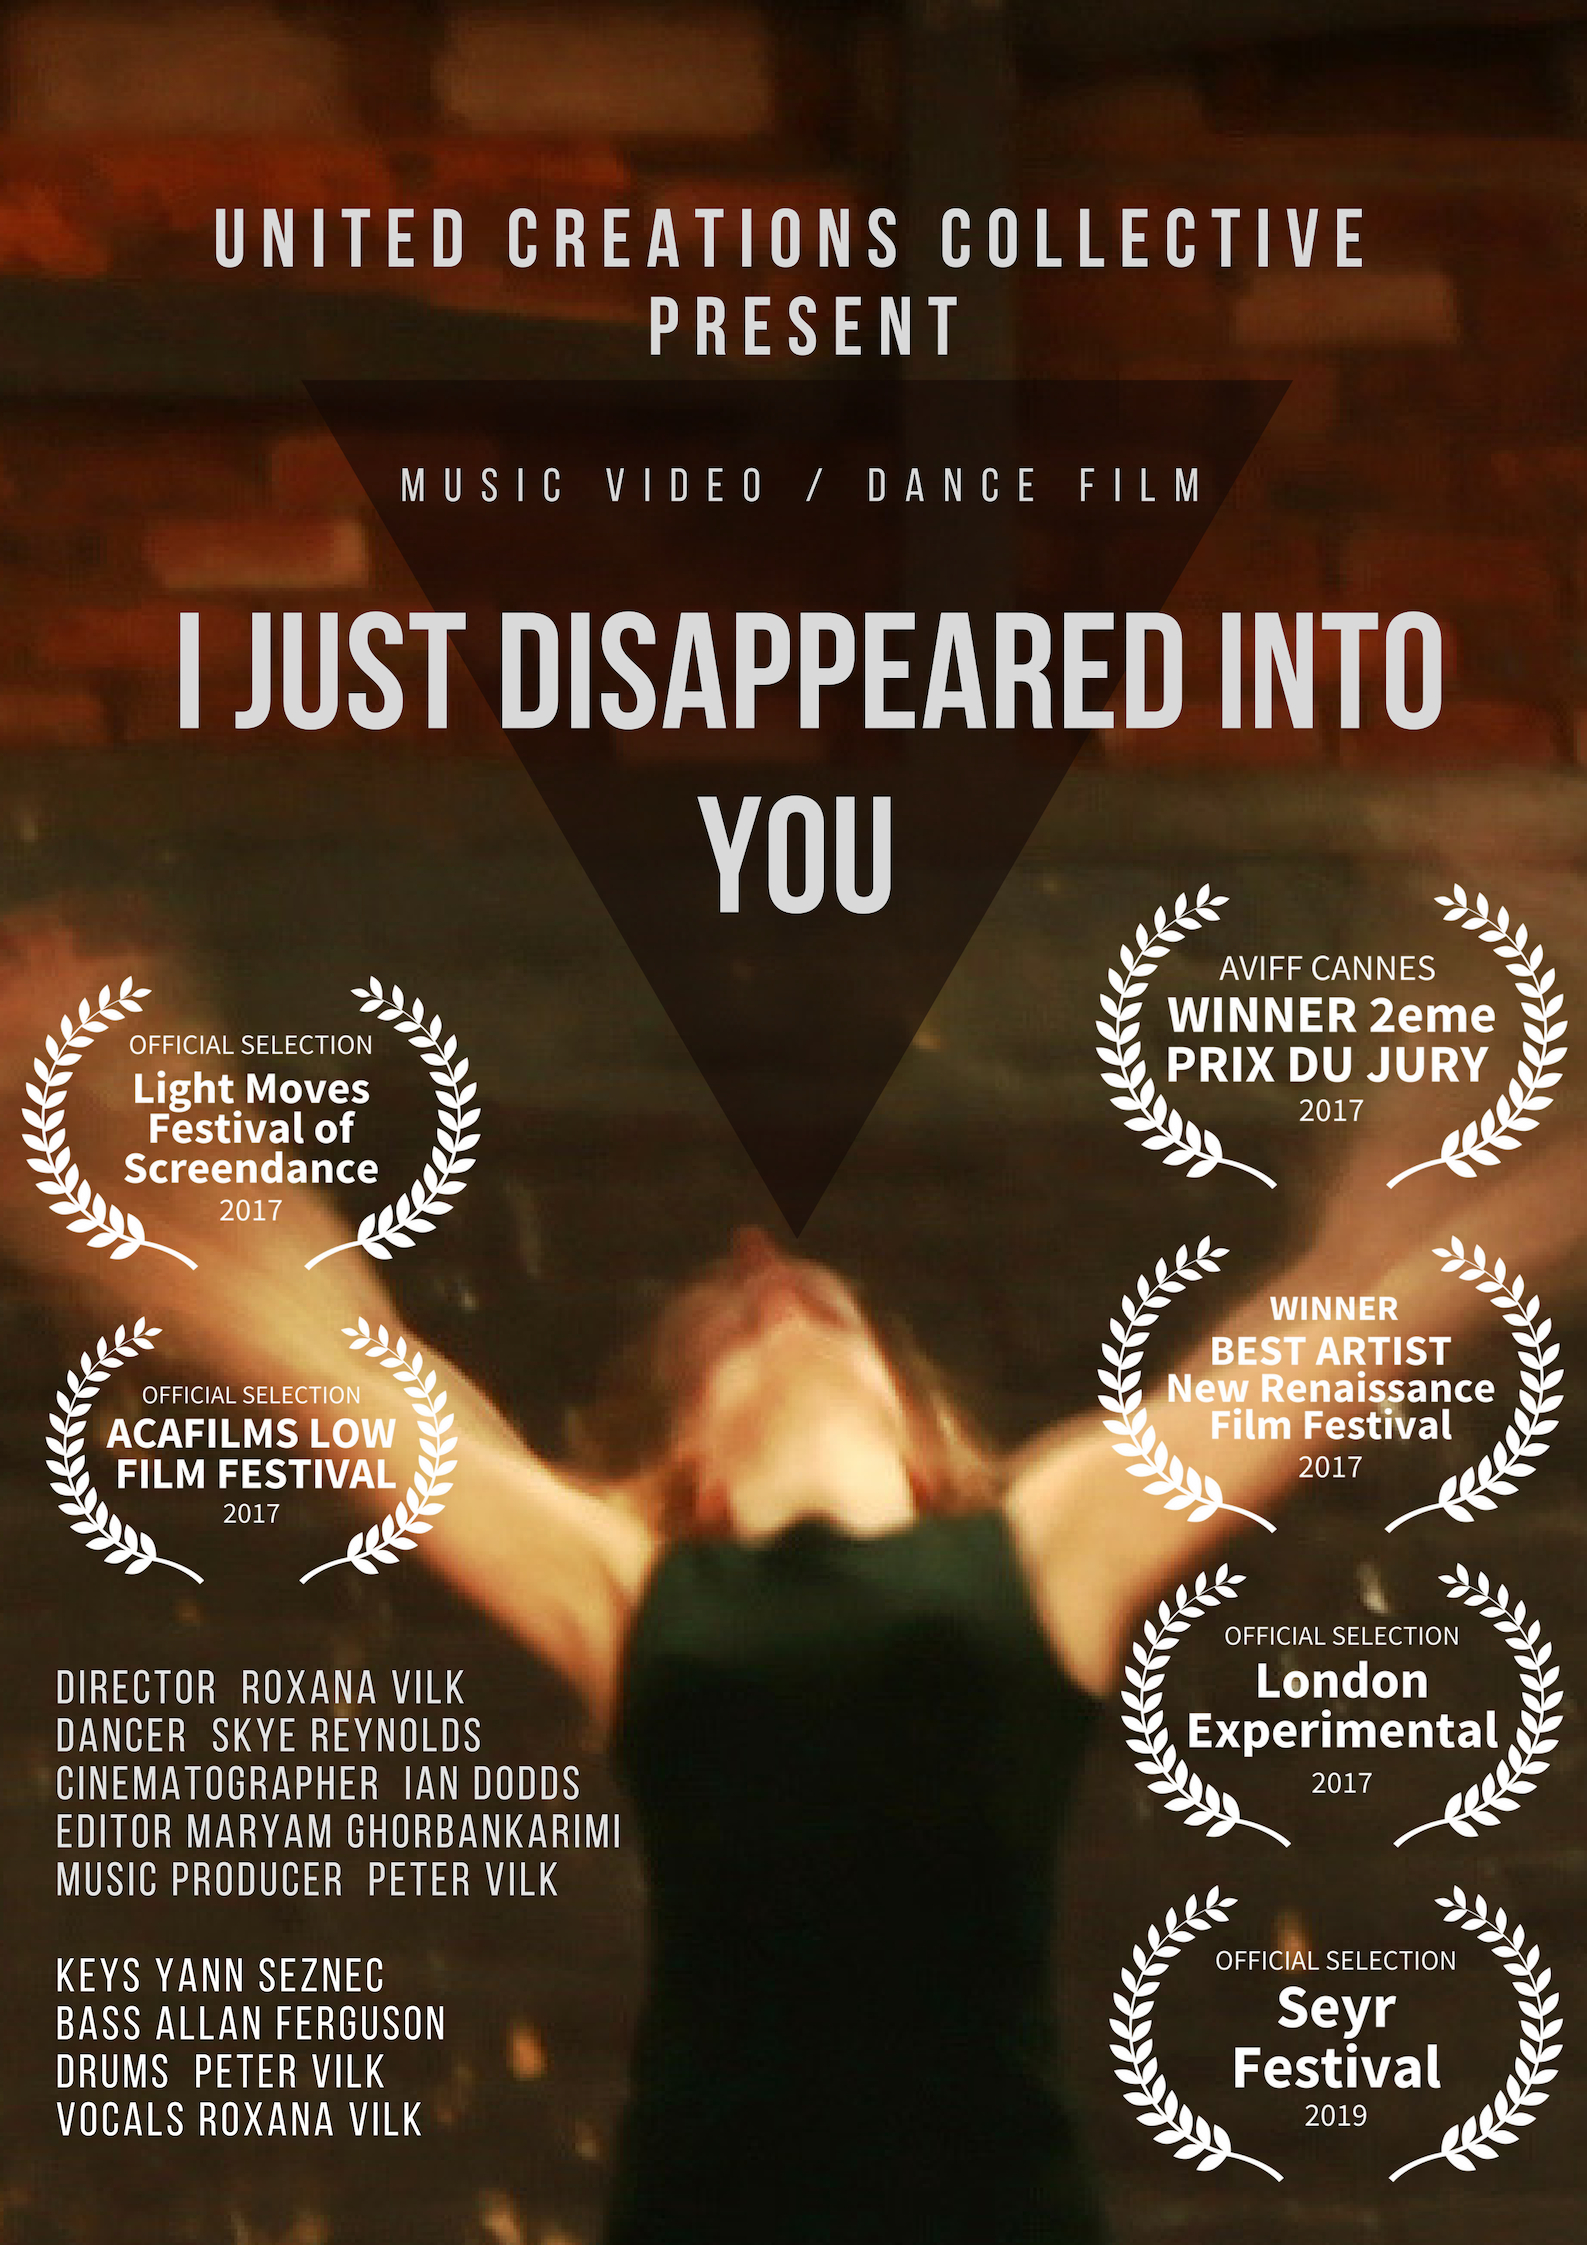 Roxana Vilk wins best Artist Award at London Renaissance Film Festival 2017 with I just disappeared Art/Film -